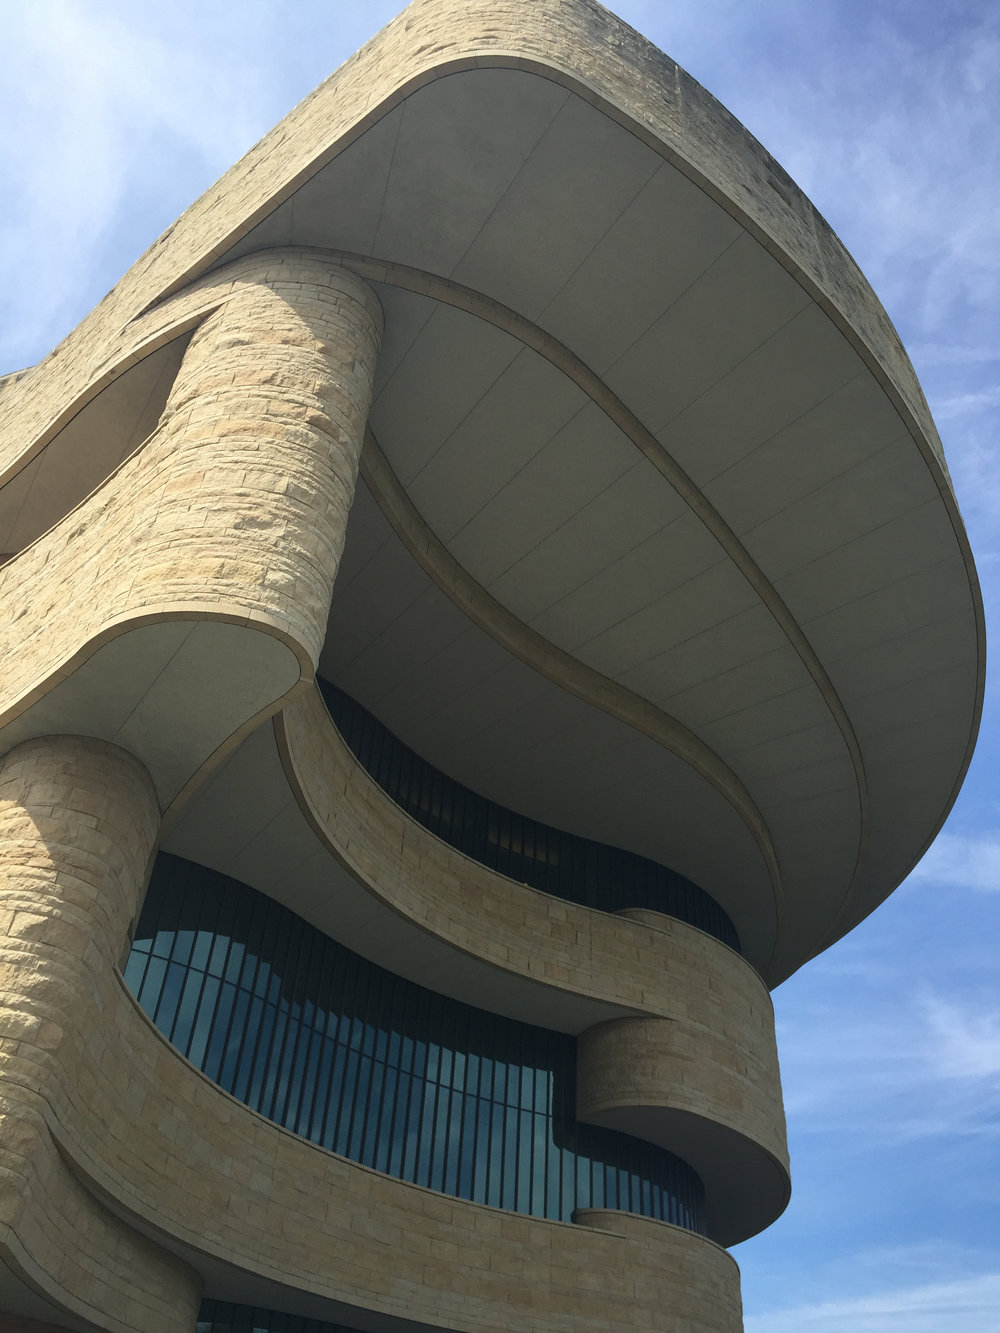 the American Indian Museum